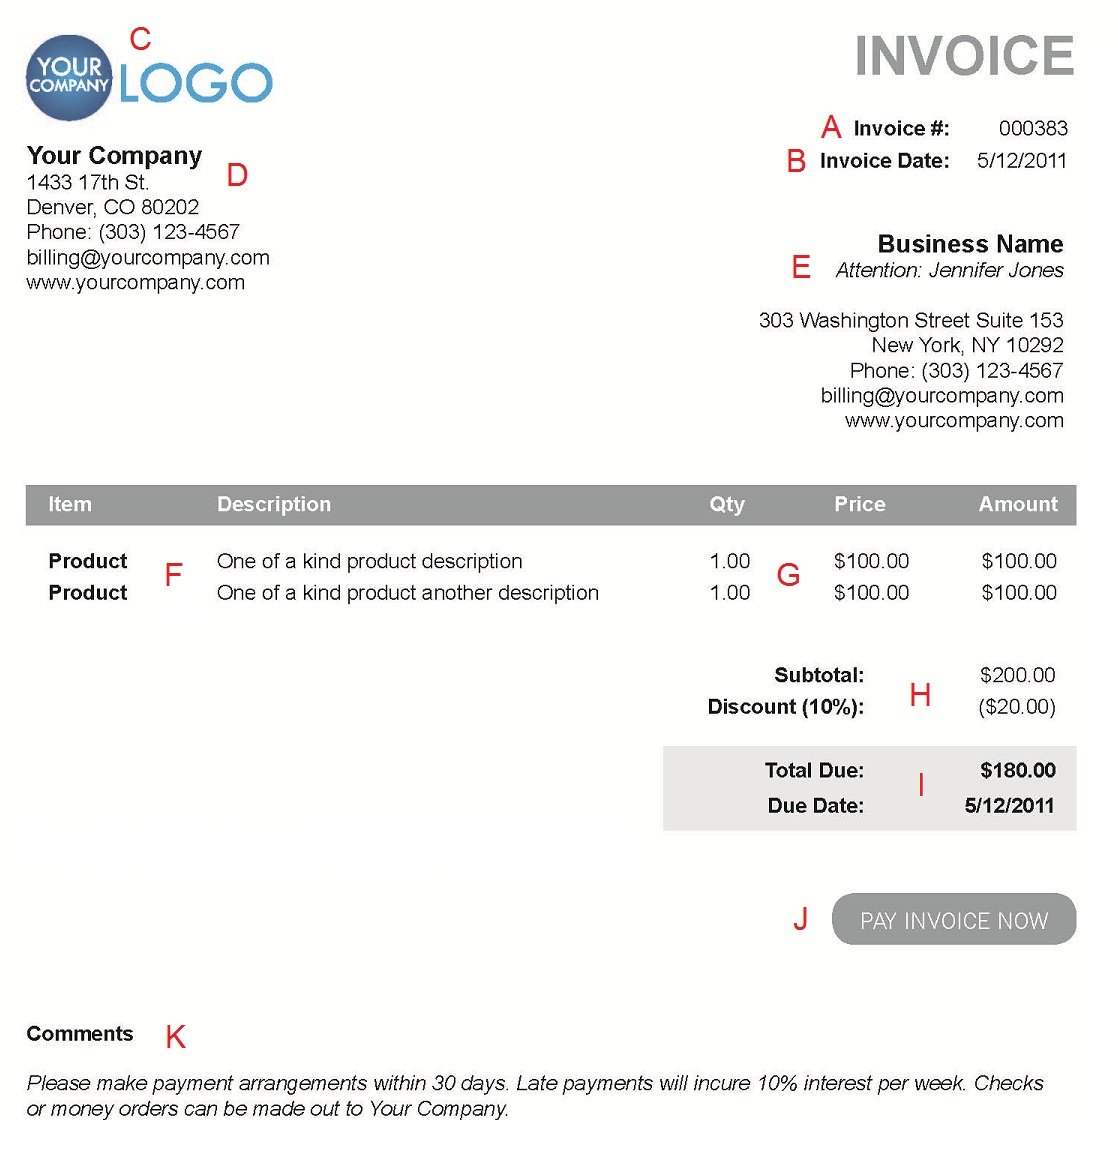 Totallocalus  Pretty The  Different Sections Of An Electronic Payment Invoice With Outstanding A  With Agreeable Invoice Software For Mac Also Invoiced Definition In Addition How To Invoice And Customs Invoice As Well As Free Printable Invoice Template Additionally Basic Invoice From Paysimplecom With Totallocalus  Outstanding The  Different Sections Of An Electronic Payment Invoice With Agreeable A  And Pretty Invoice Software For Mac Also Invoiced Definition In Addition How To Invoice From Paysimplecom